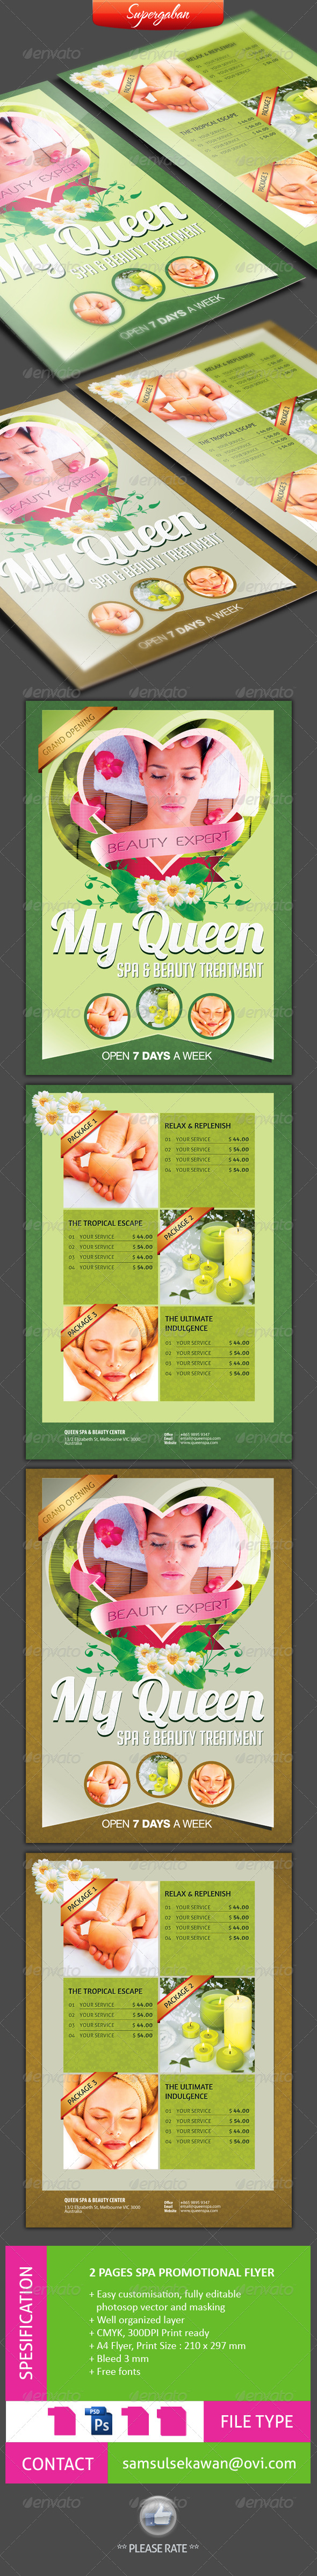 2 PAGES SPA PROMOTIONAL FLYER - Commerce Flyers